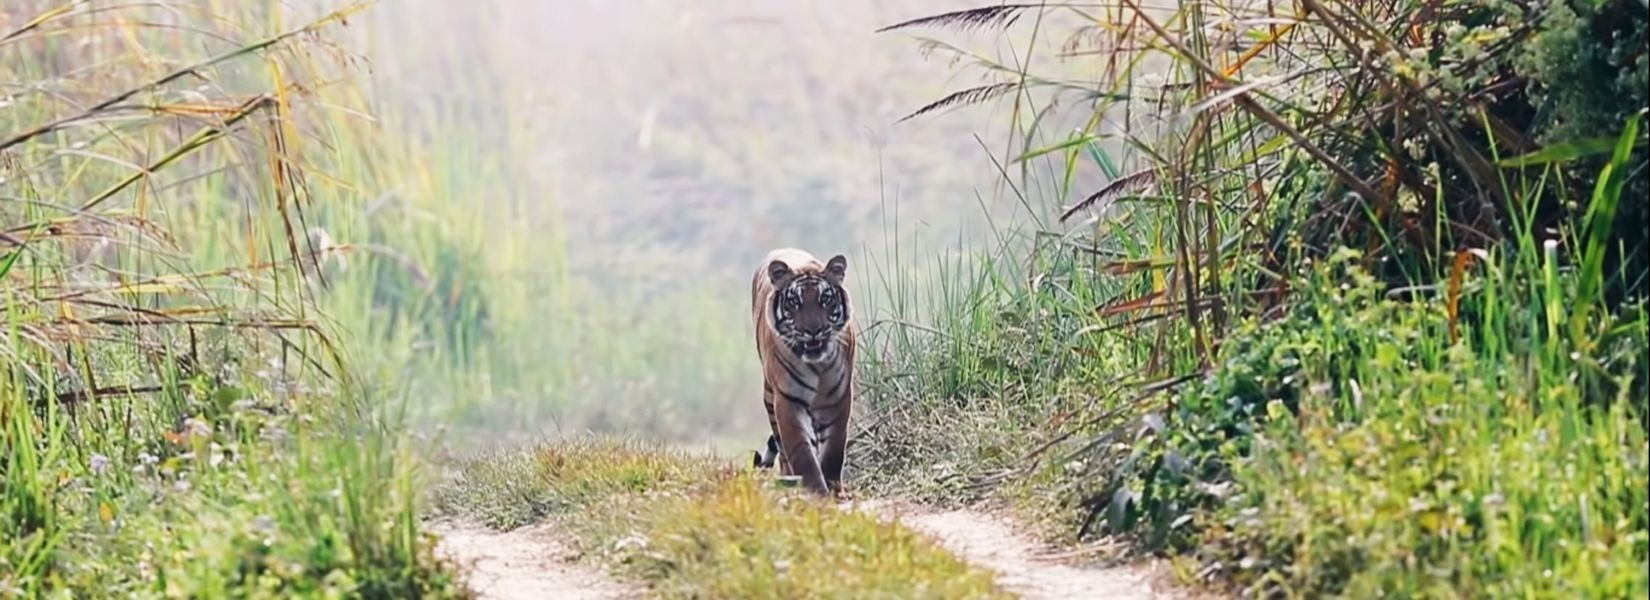 Bardia National Park, Bardia jungle Safari, Royal Bengal Tiger